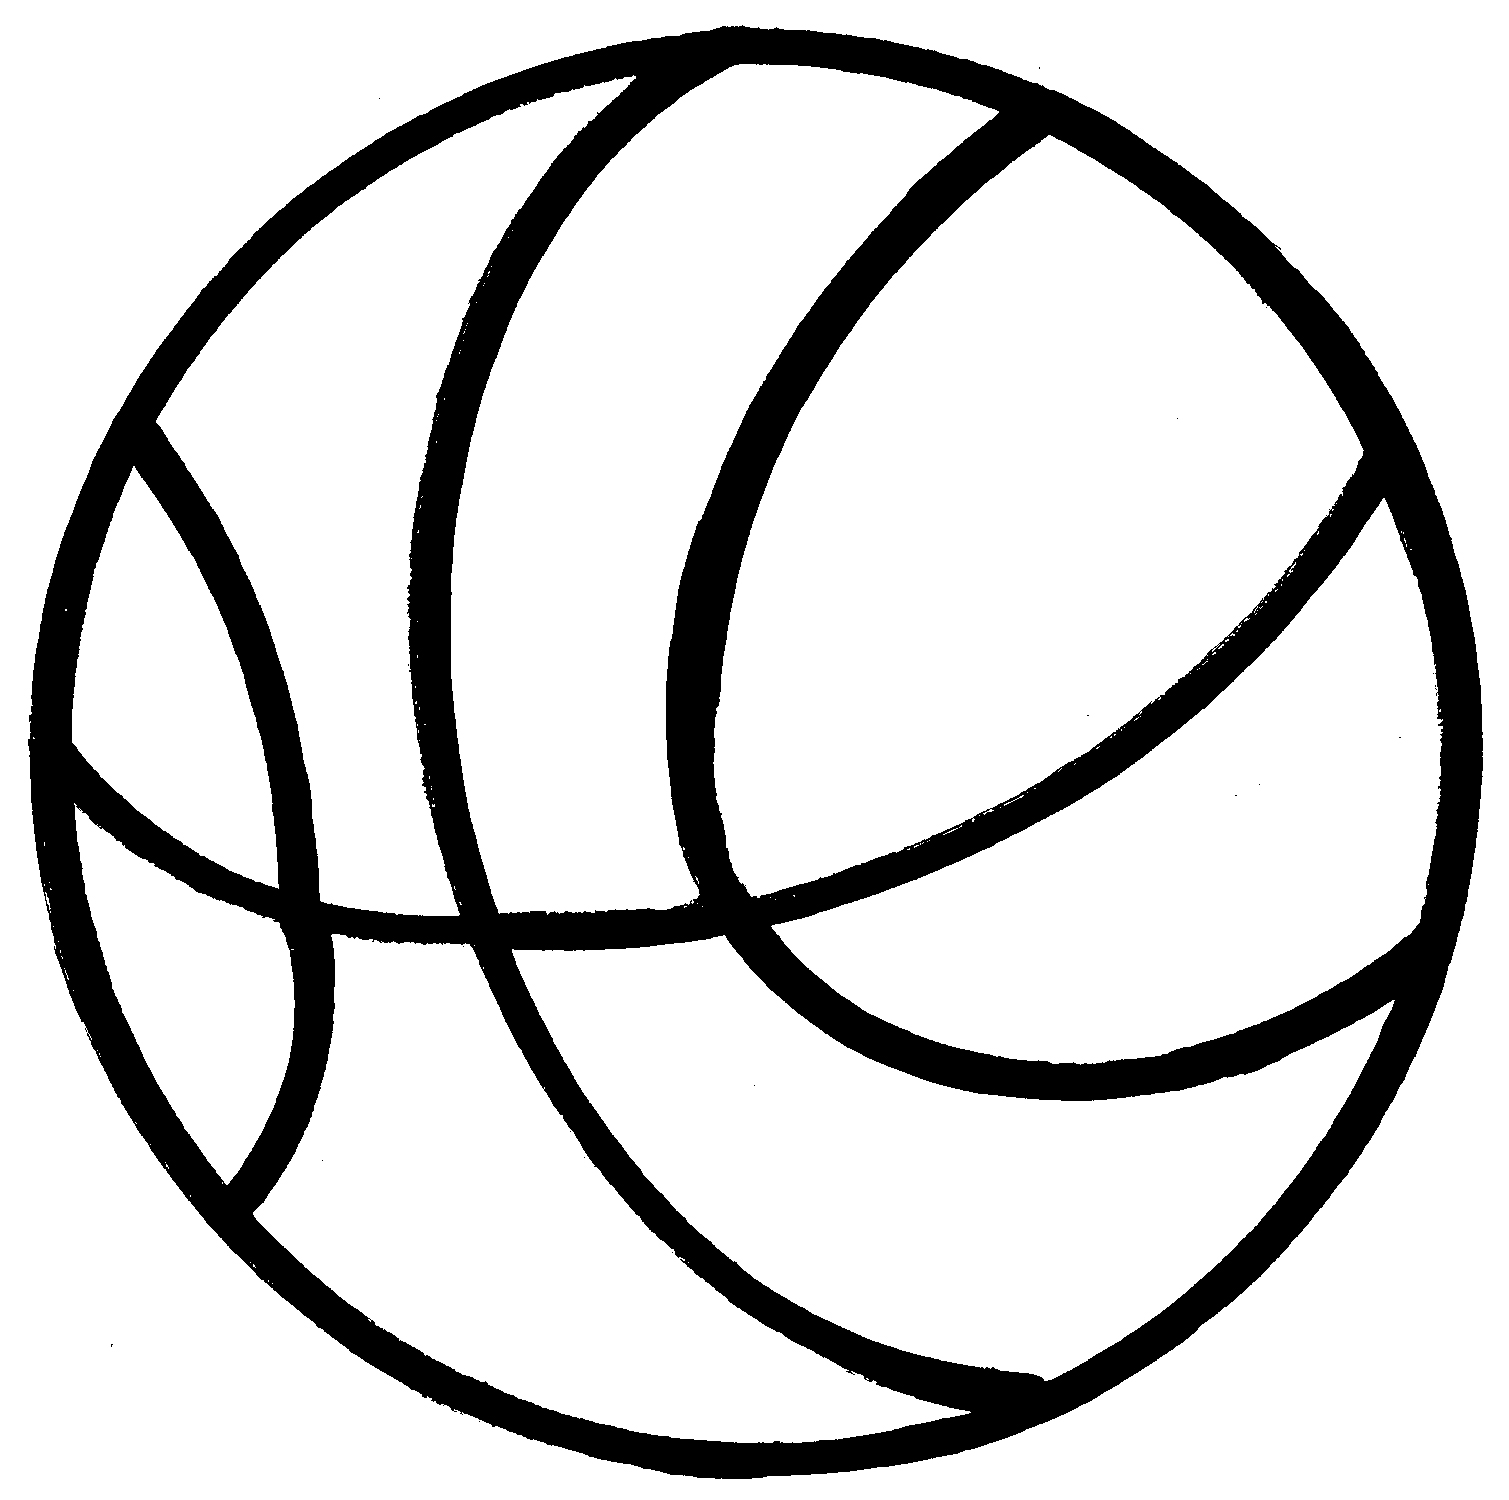 Basketball clip art free basketball clipart to use for party image 6